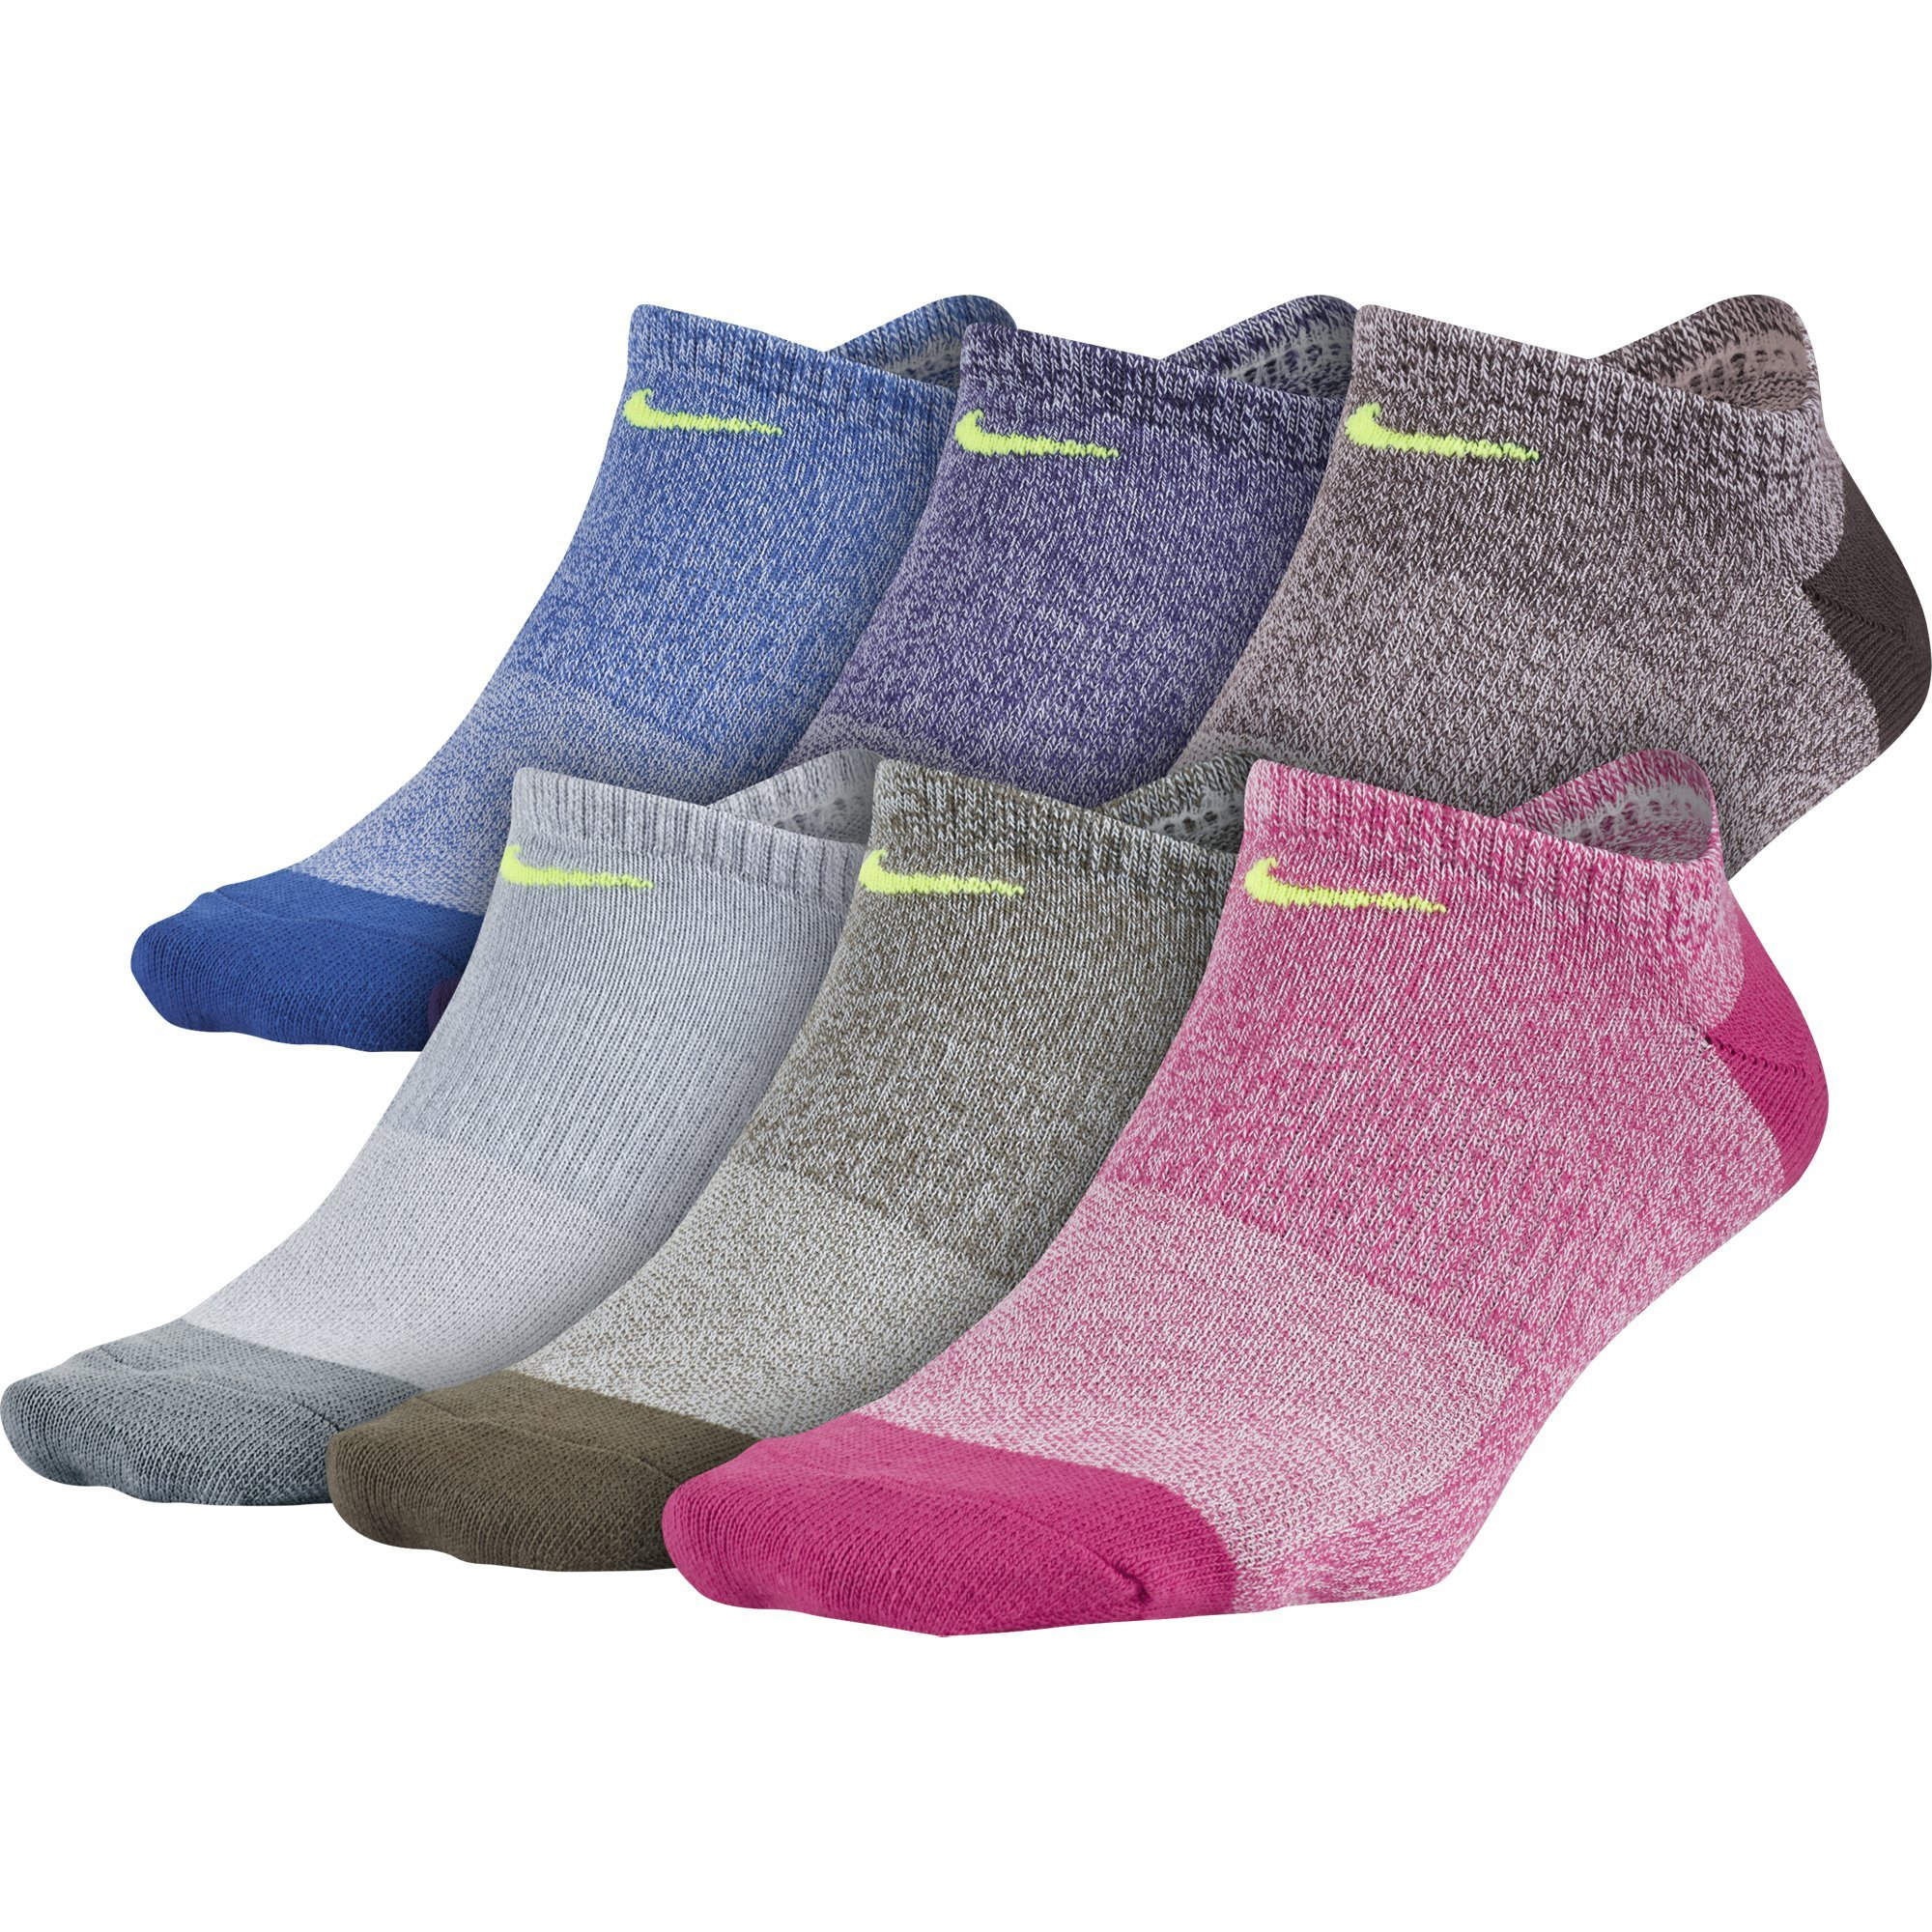 NIKE Women's Everyday Lightweight No-Show Socks (6 Pairs), Multi-Color (941), Medium